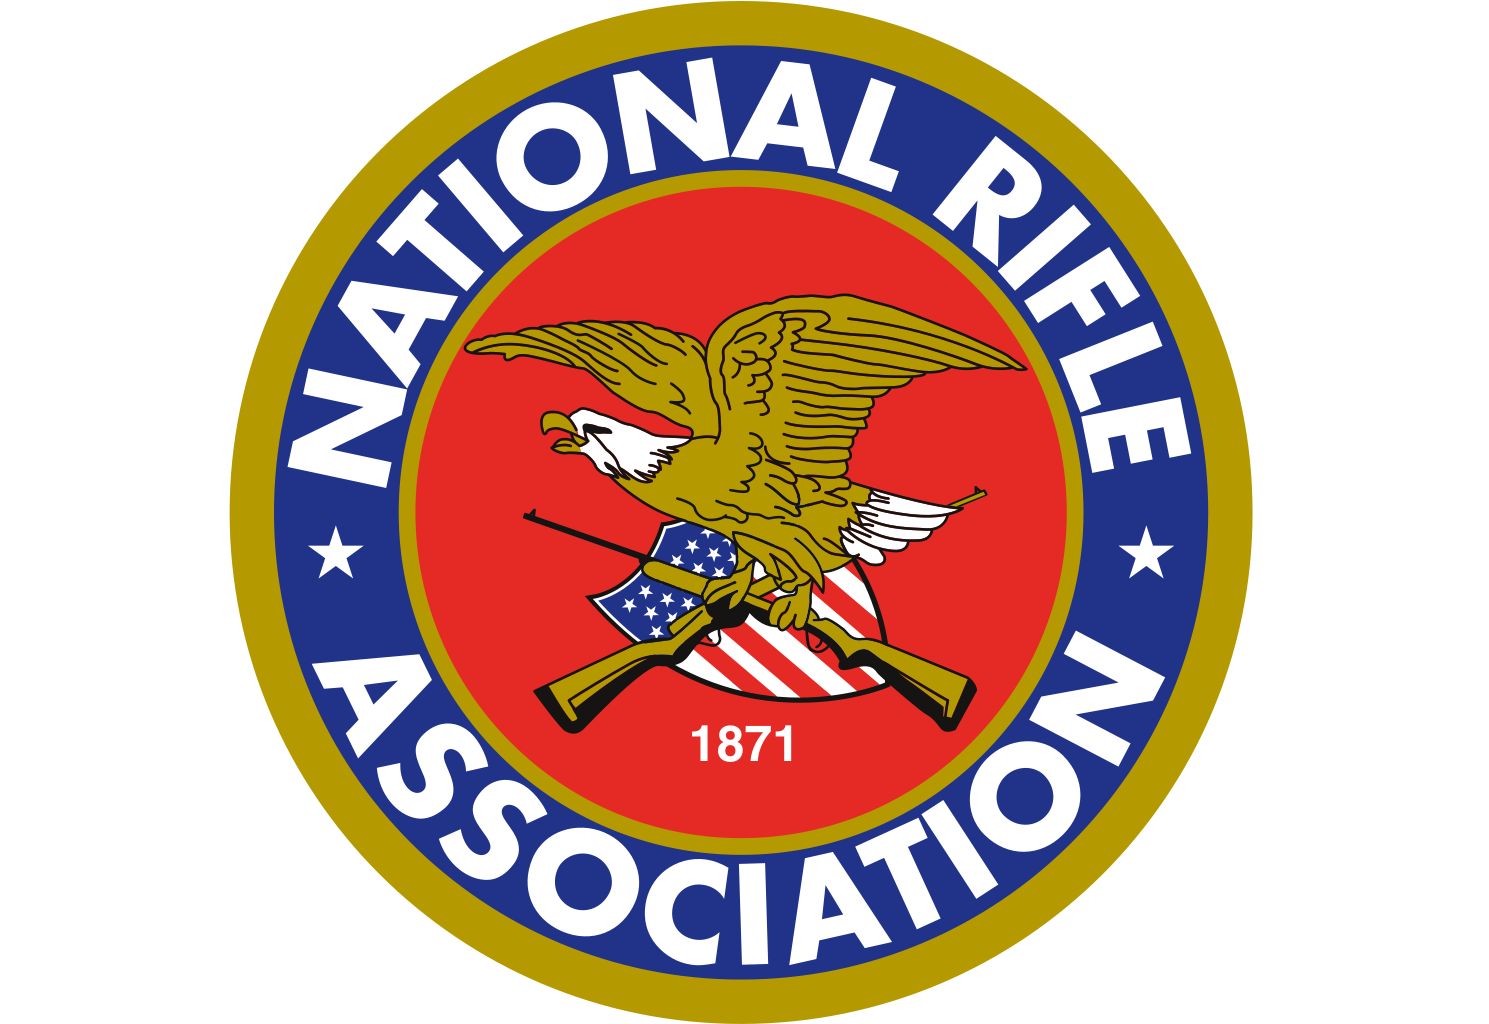 Survey: NRA Members Differ On Key Issues Compared to Non-Member Gun Owners